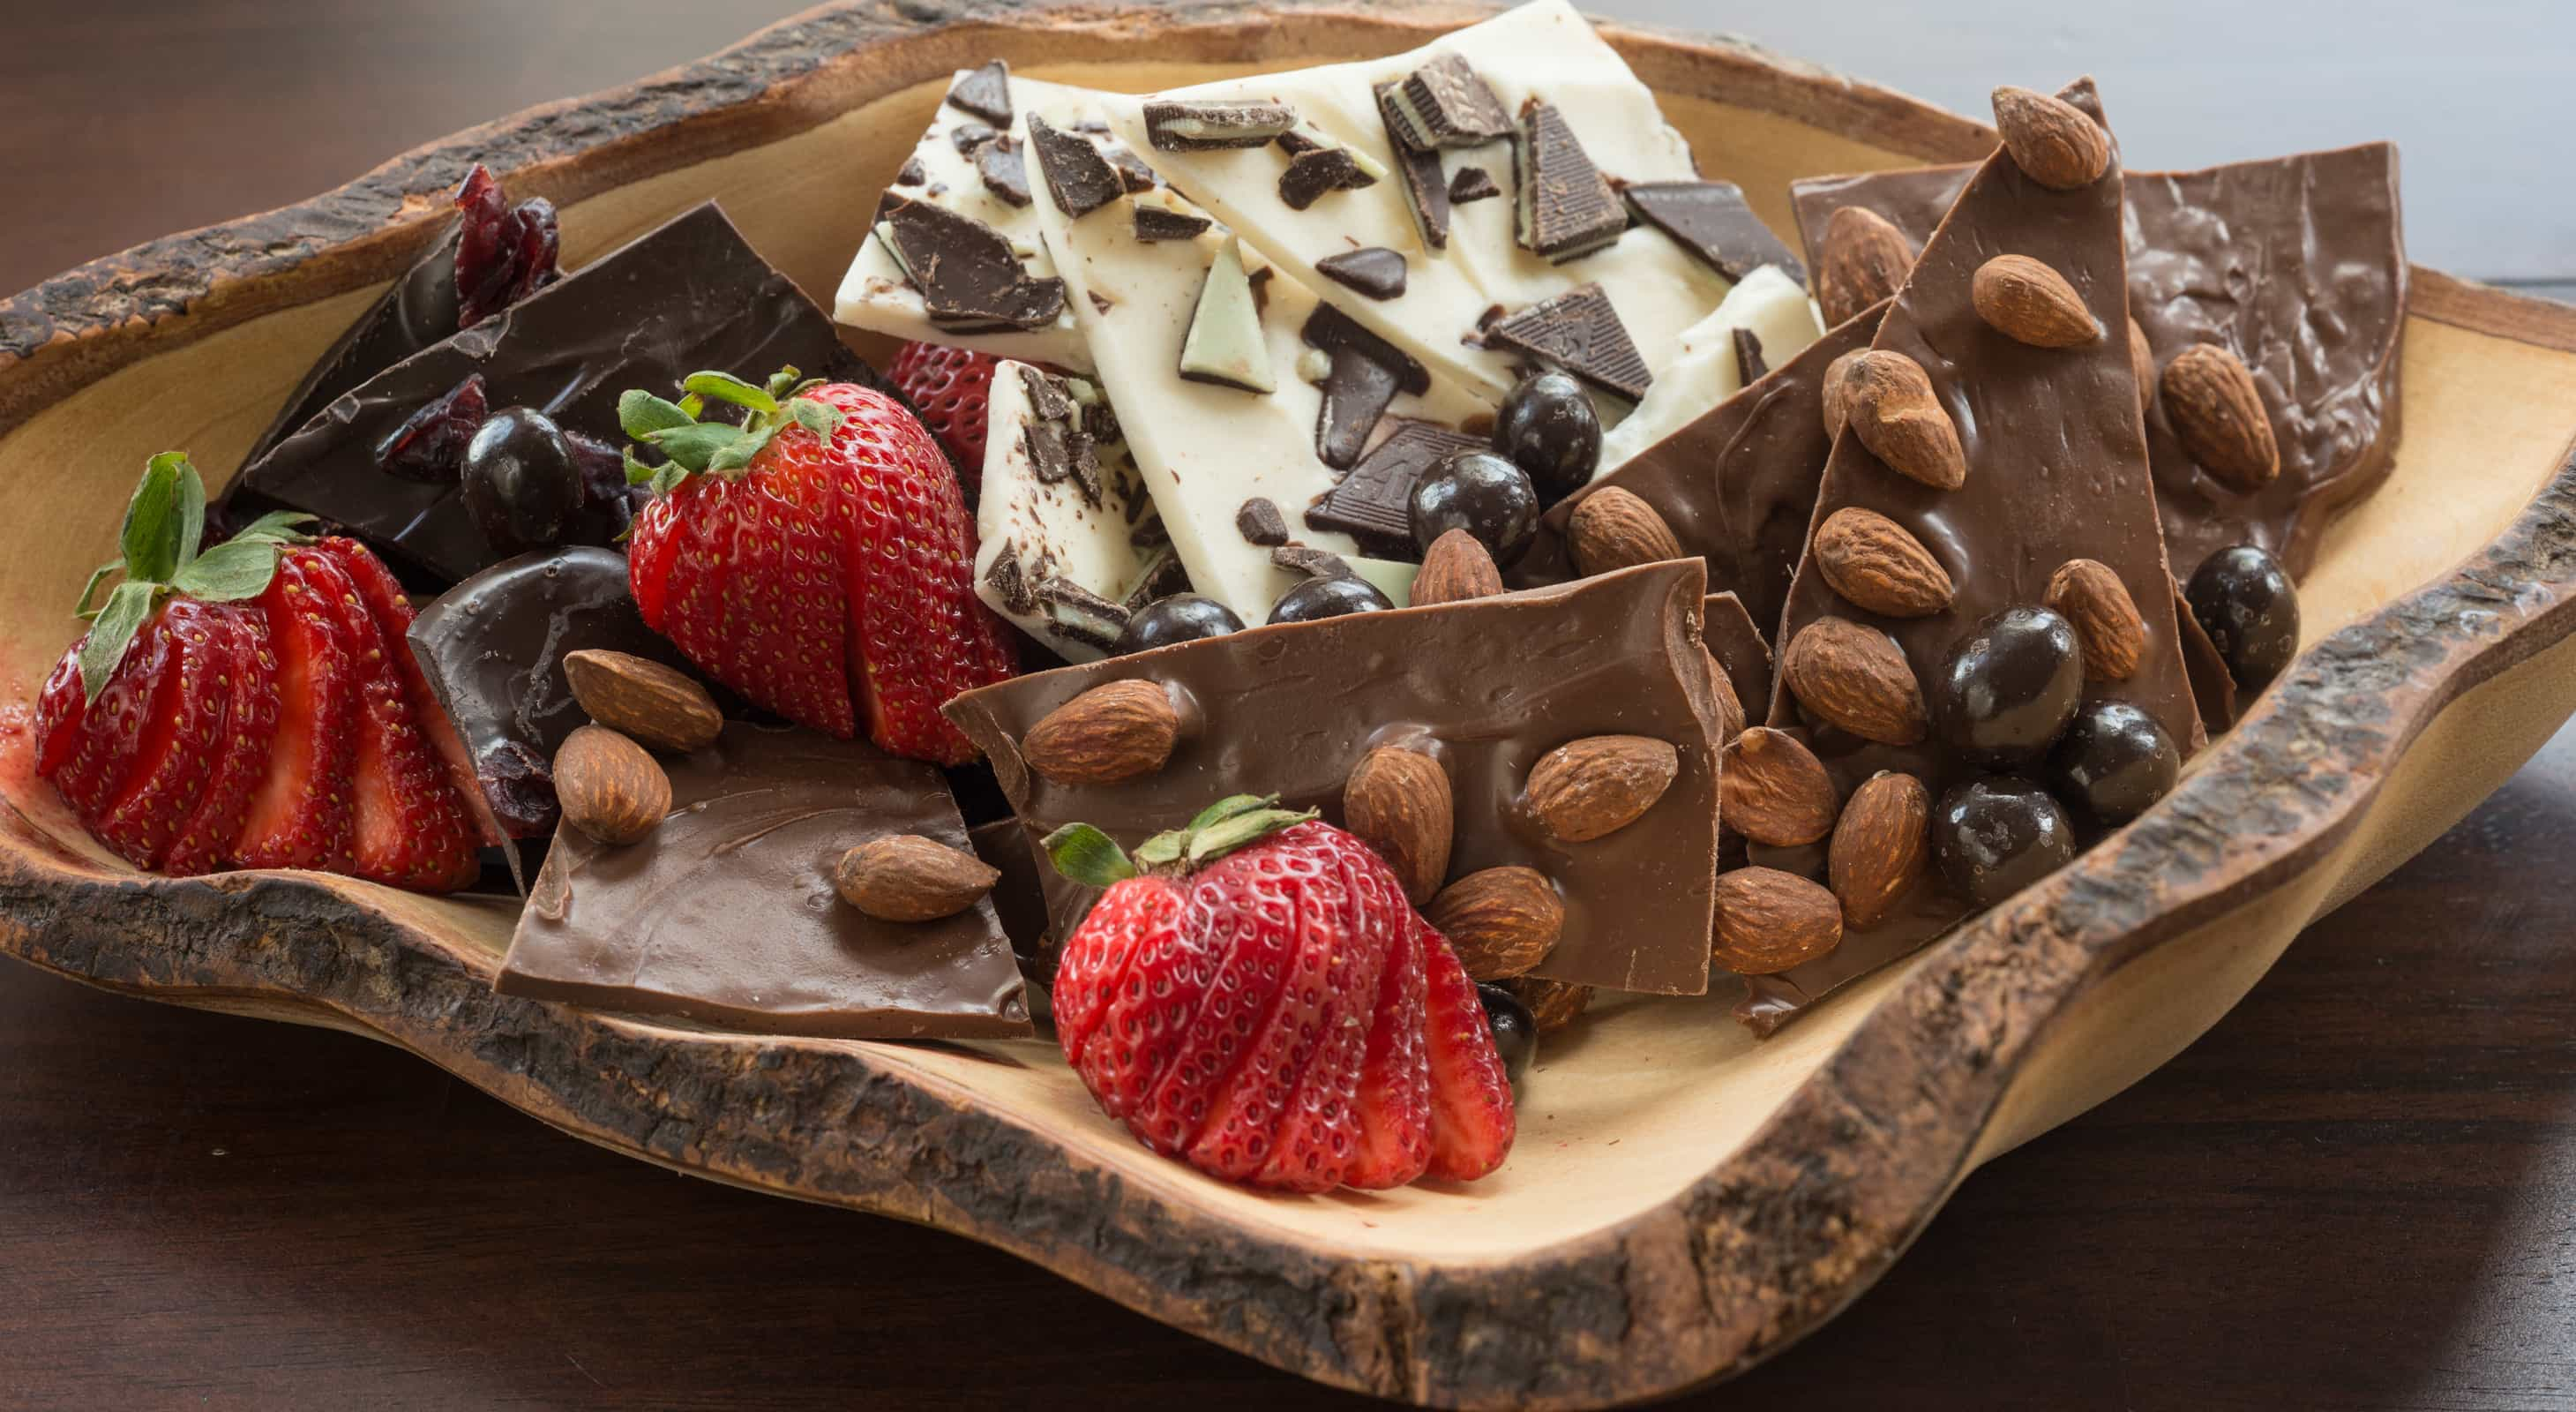 Handcrafted Chocolate Bark